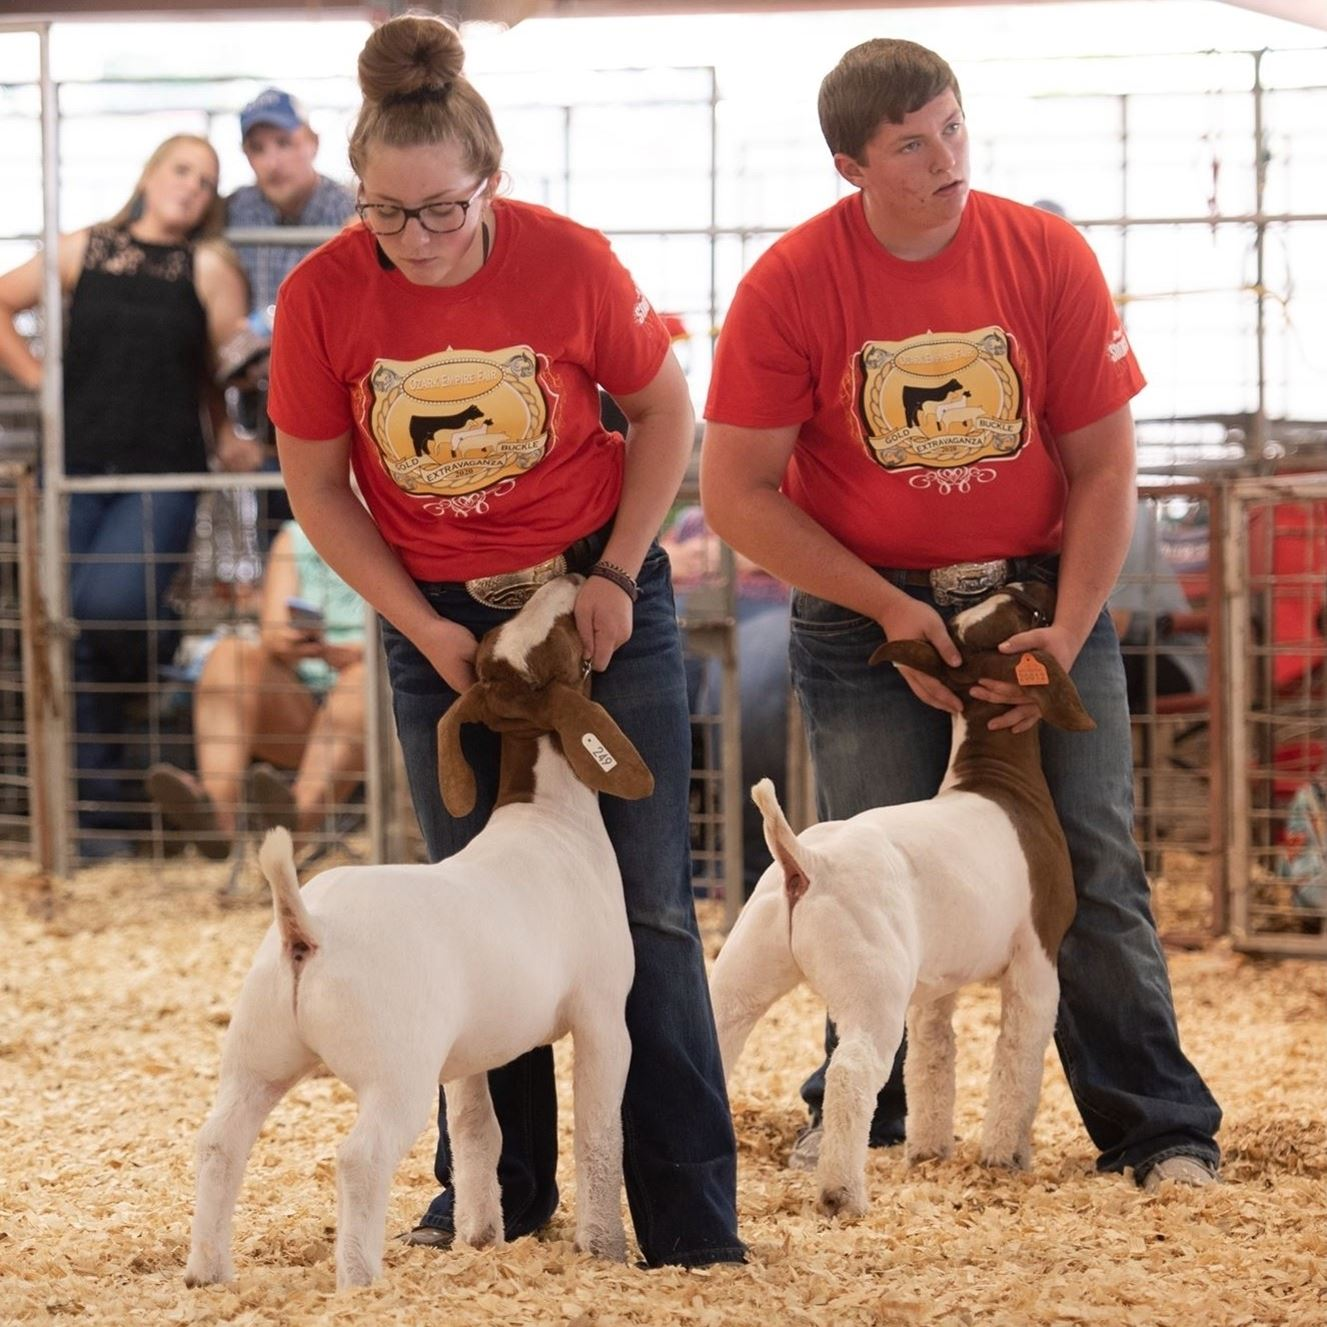 Girl & boy showing red & white goats in an arena